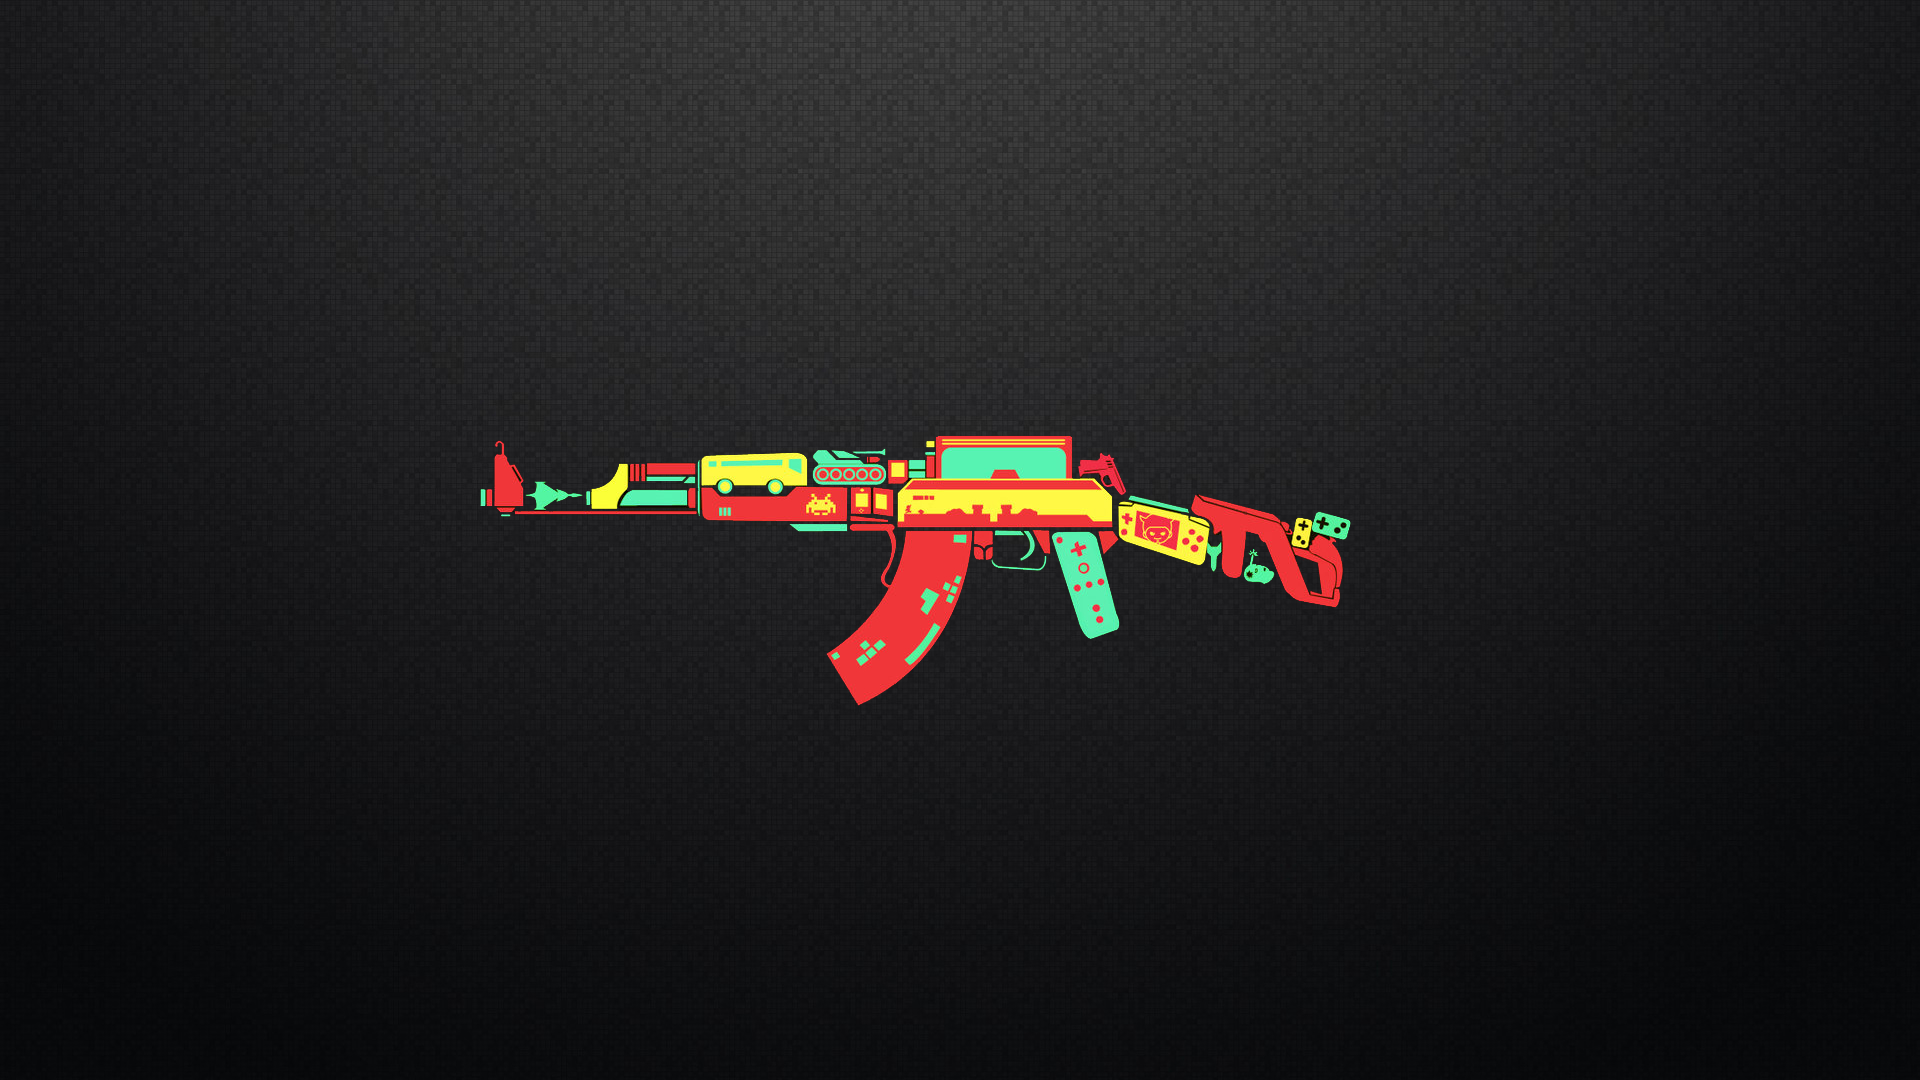 AK 47 controller game weapon funny humor wallpaper 1920x1080 1920x1080